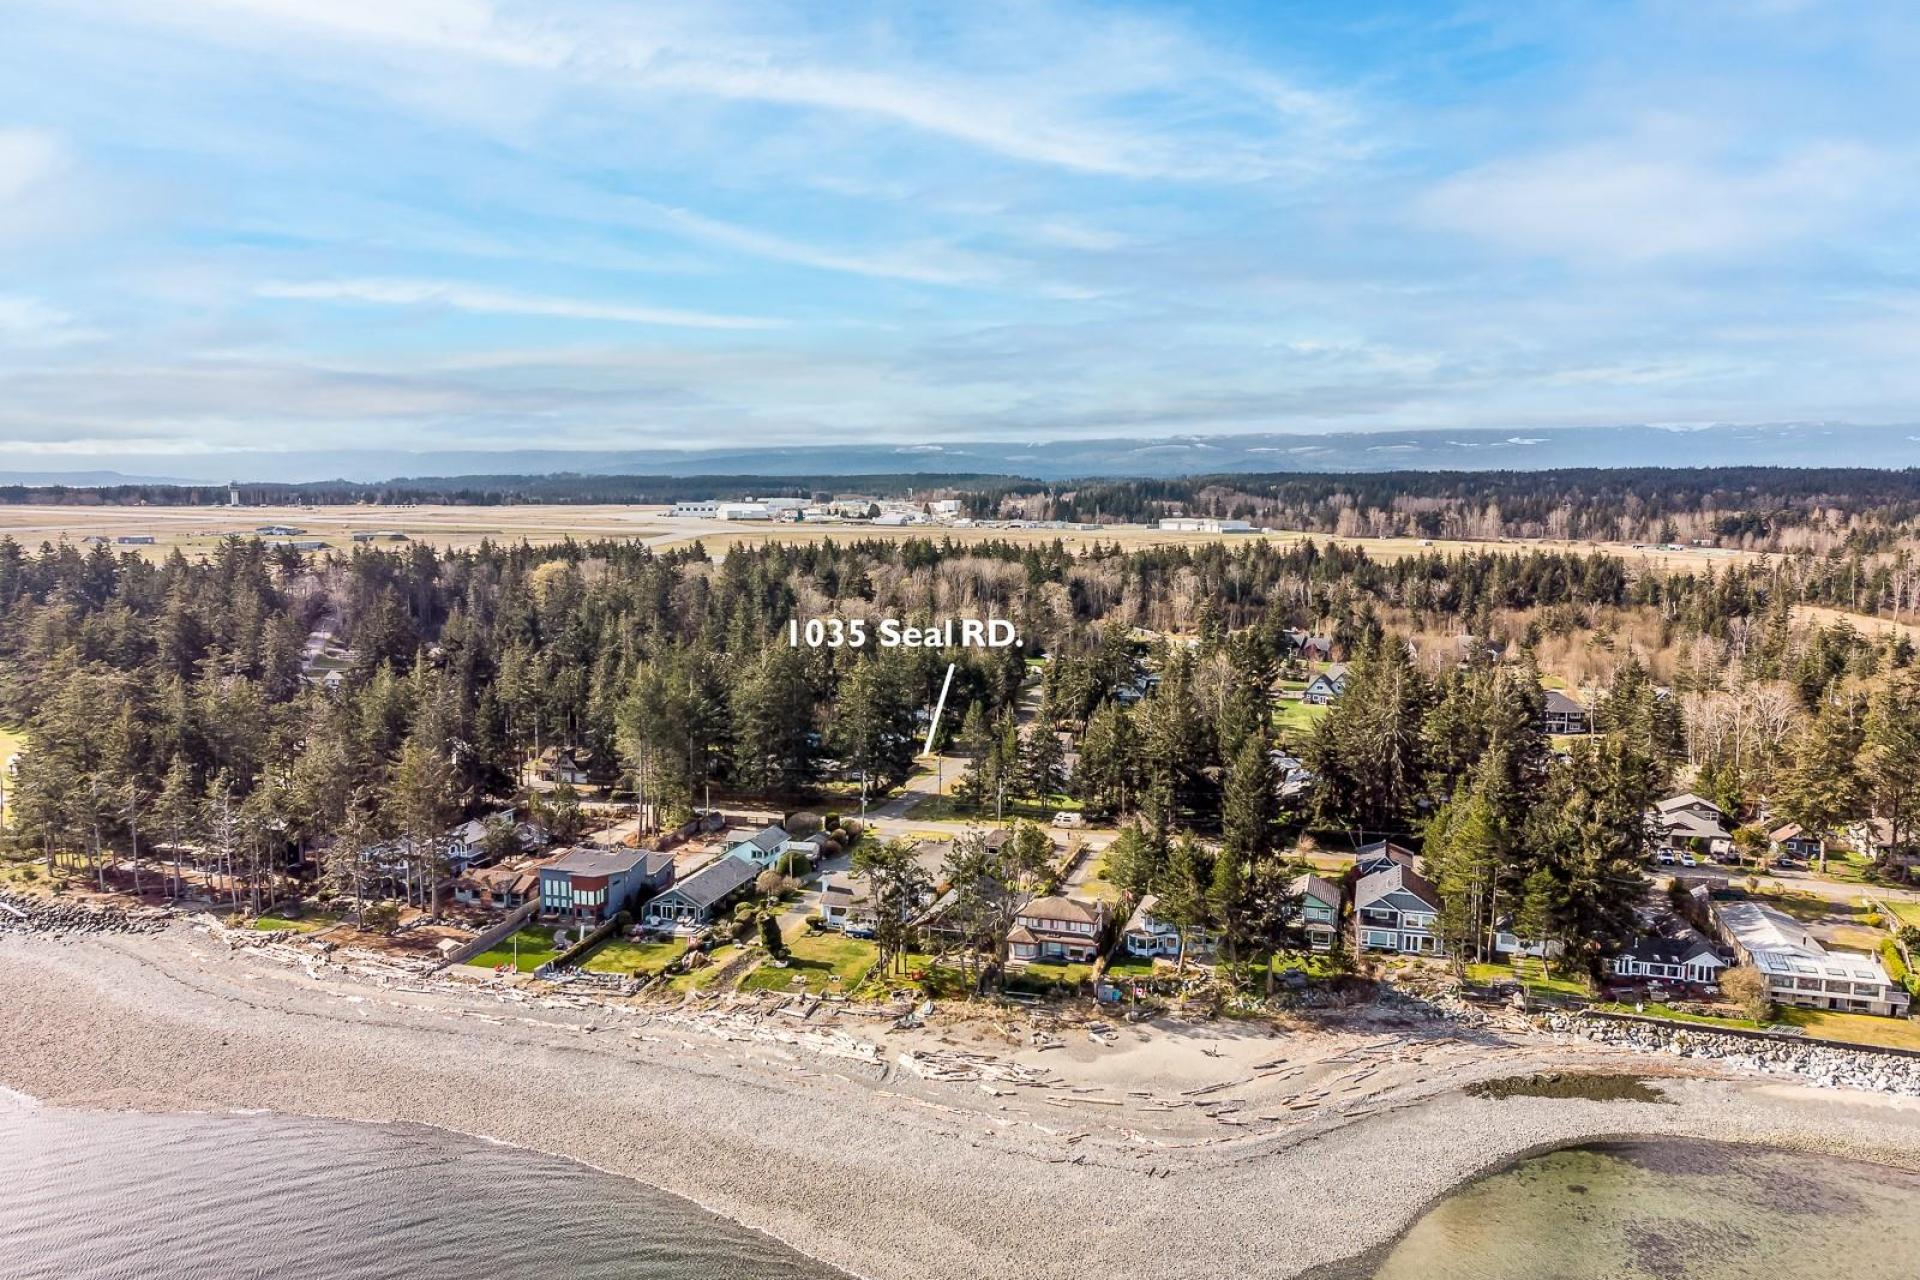 1035 Seal Road, Comox Valley